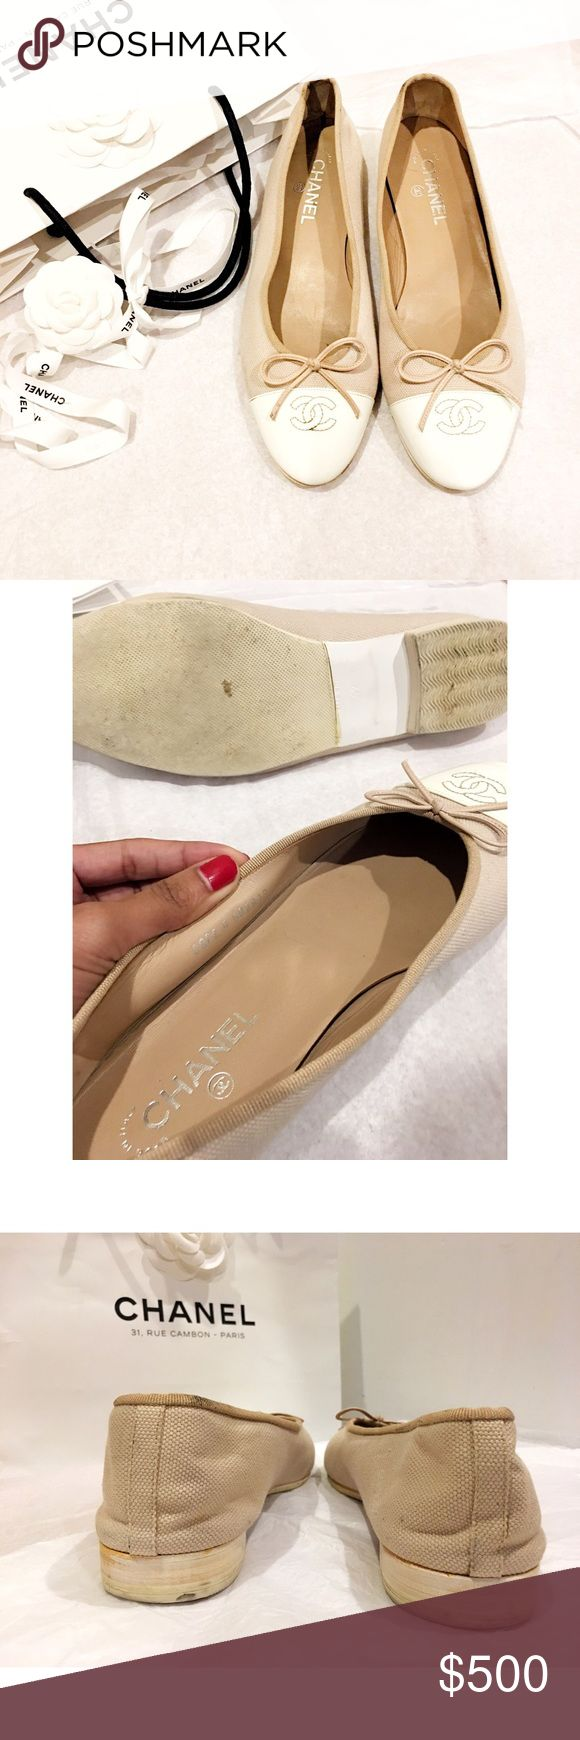 "HOLIDAY SALE🌷 Chanel Nude CC Classic Ballet Flats Authentic. Nude pastel pink & cream patent leather CC cap toe ballet flats w/ 1""heel. Pre-loved condition & have been resoled. Made in Italy, Euro 42. Please note: Chanel runs small. No box/dustbag. Priced low due to wear but still have tons of walking left to do! *I personally style all pics* NO TRADE. PRICE FIRM unless bundling. Bundle & save even more✅ CHANEL Shoes Flats & Loafers"